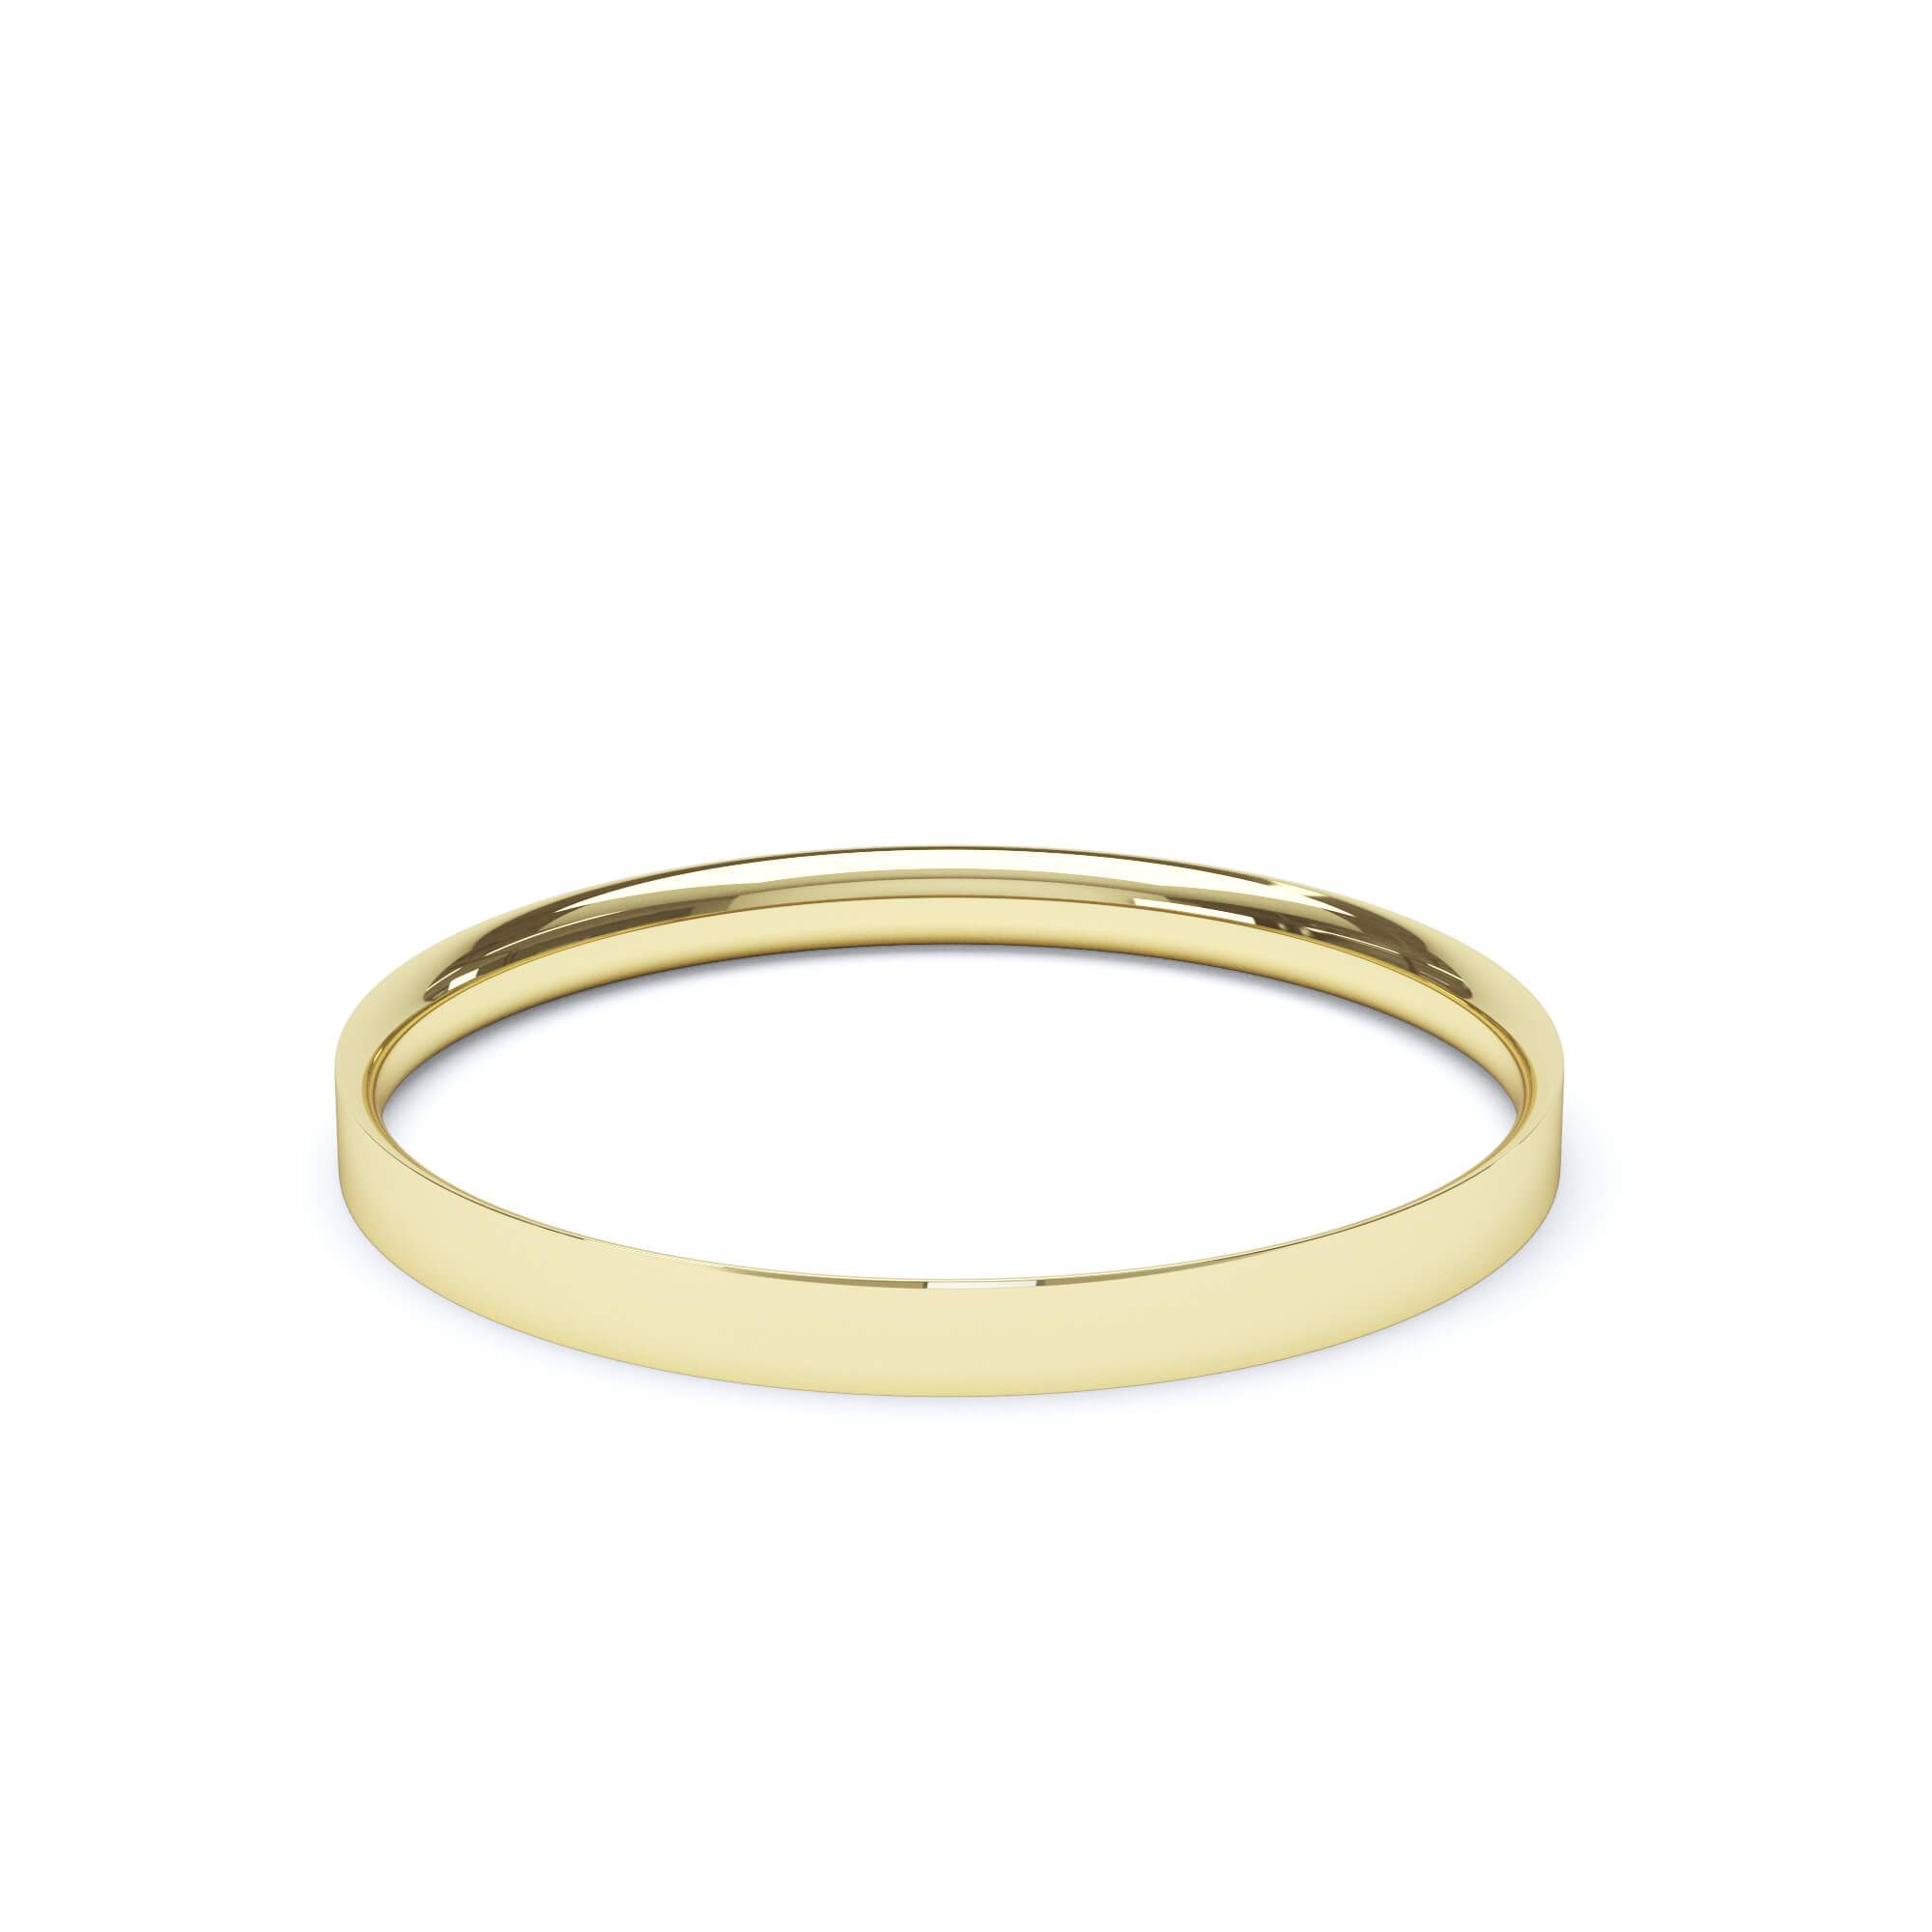 Lily Arkwright Wedding Bands 2.0mm / 18K Yellow Gold Women's of Plain Wedding Band Flat Court Profile 18k Yellow Gold